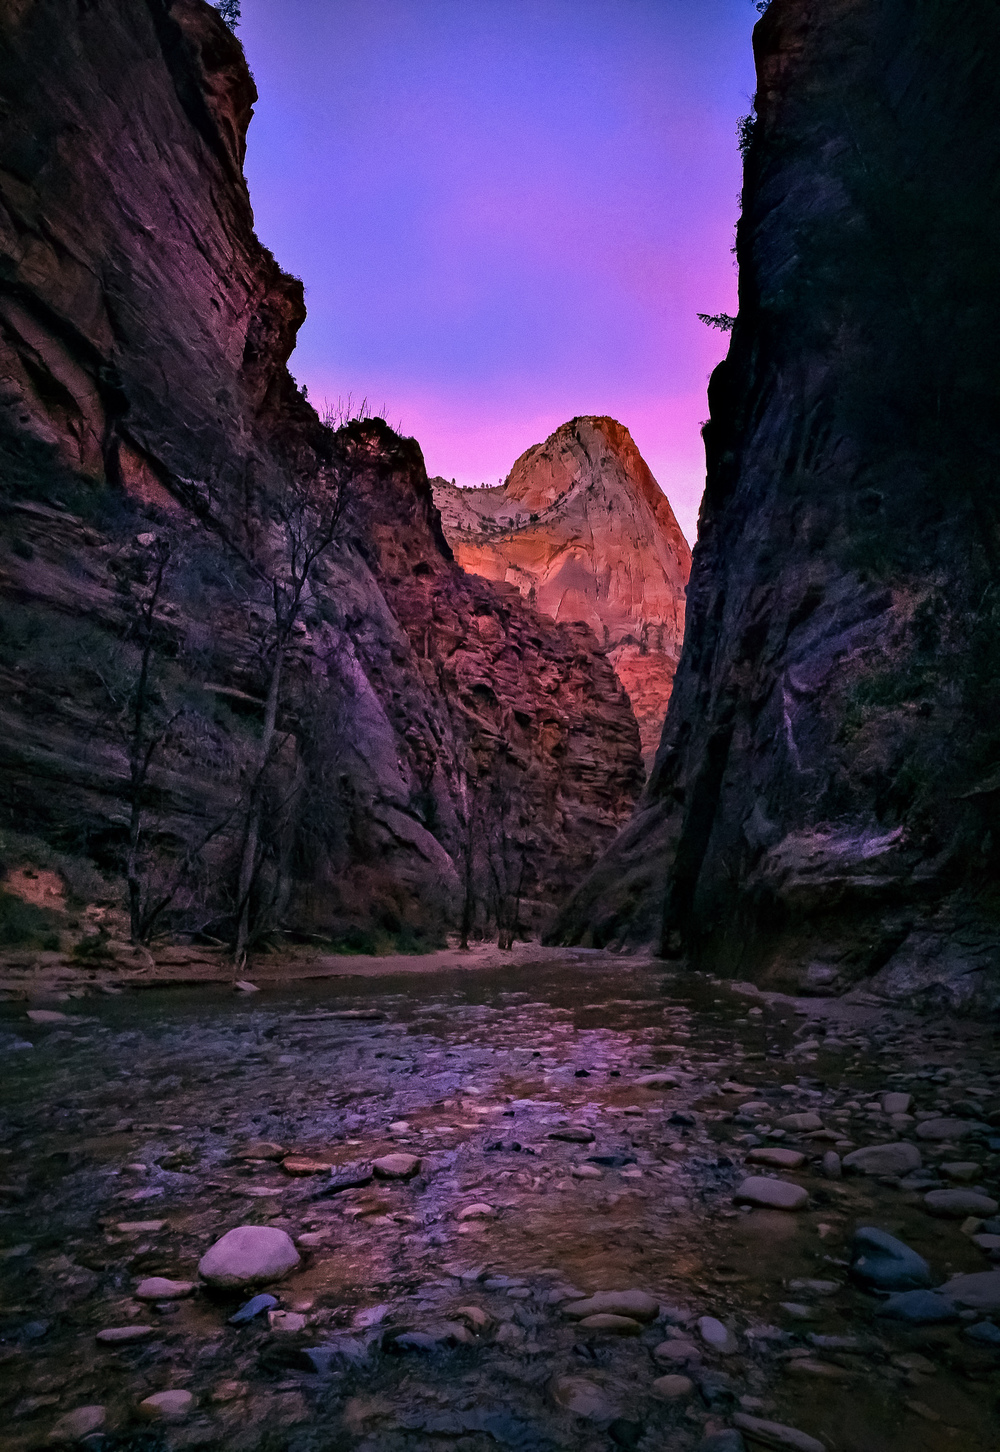 The Narrows at Zion National Park. Shot with the iPhone 5S in pano mode, giving a needed wide angle view that the X100T won't deliver. A Fuji XF10-24 lens would have covered this well, but that is a much bulkier setup than an X100t. [ iPhone 5S, f/2.2, 1/120s, ISO 320 ]